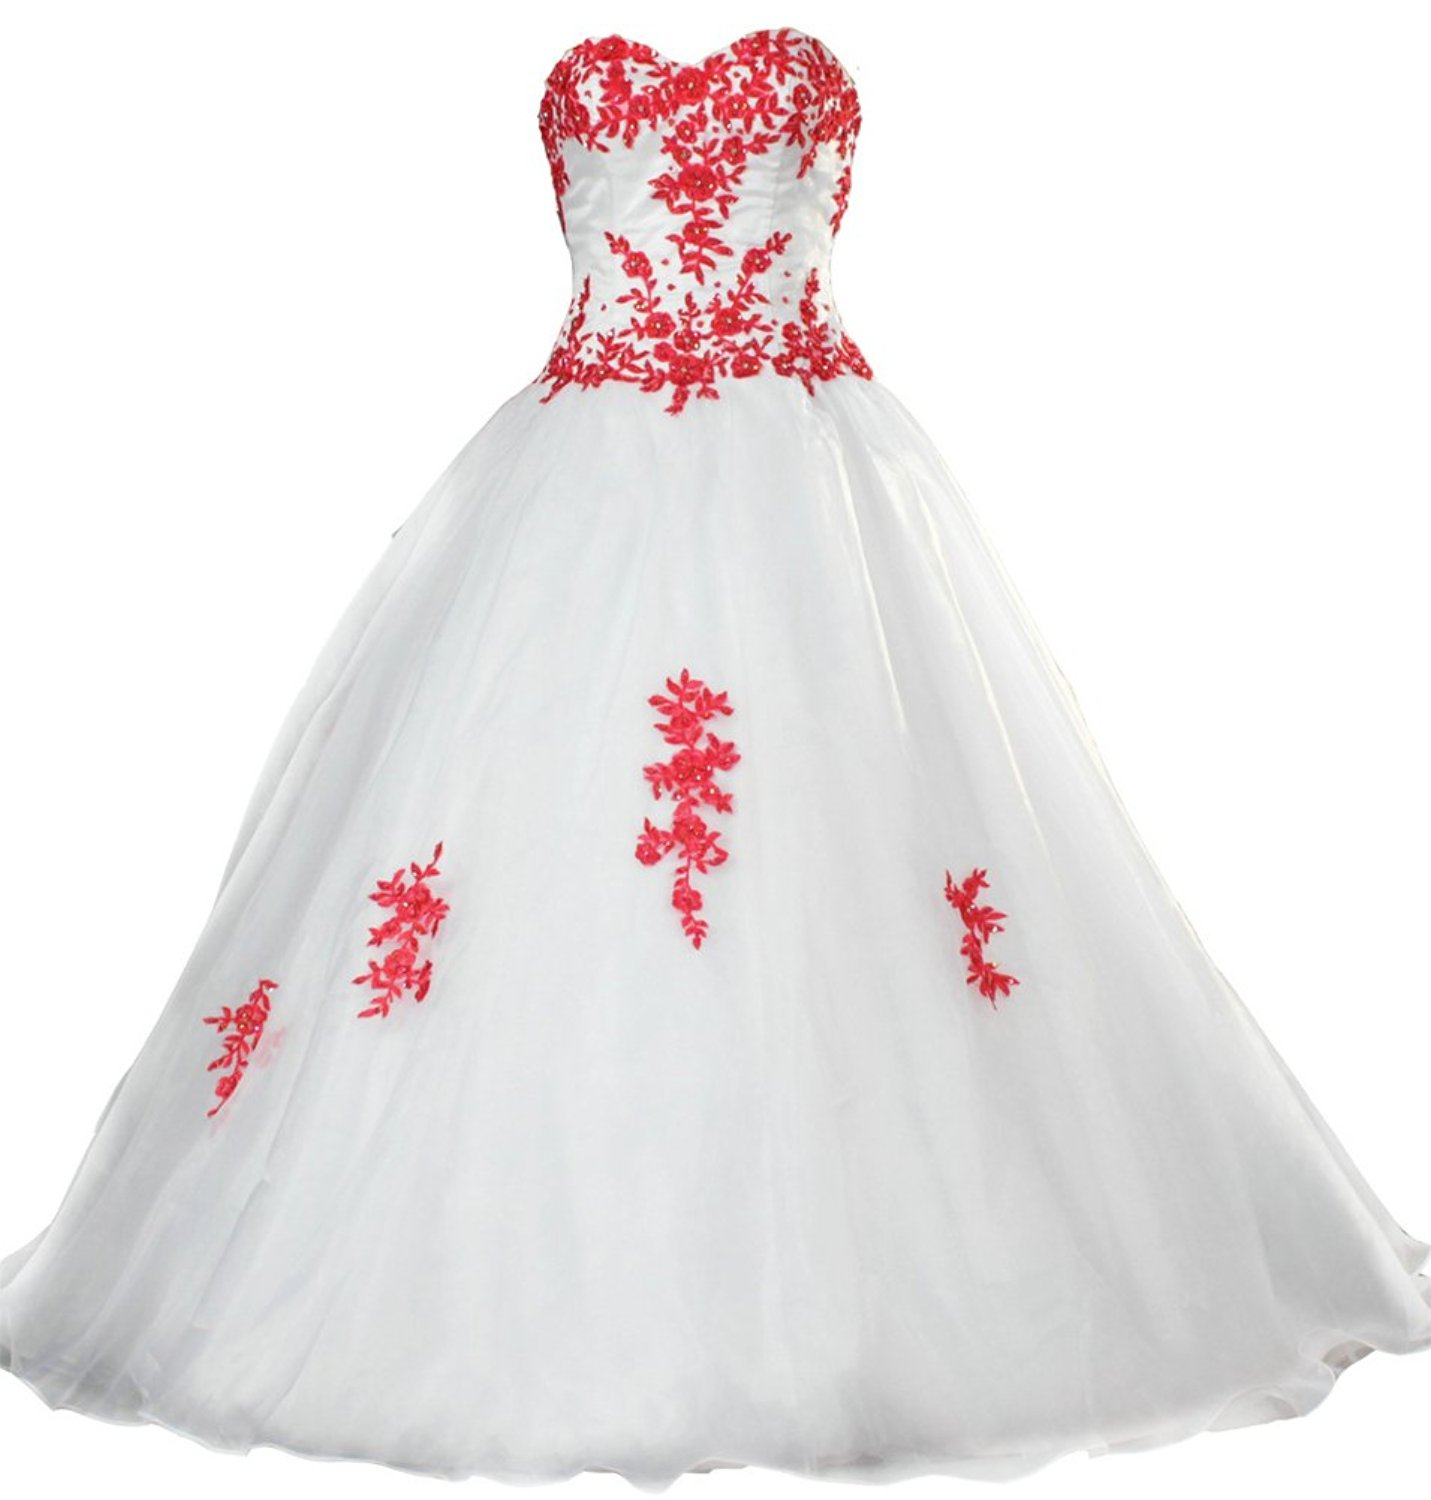 20 Best Red and White Wedding Dresses 20   Heavy.com